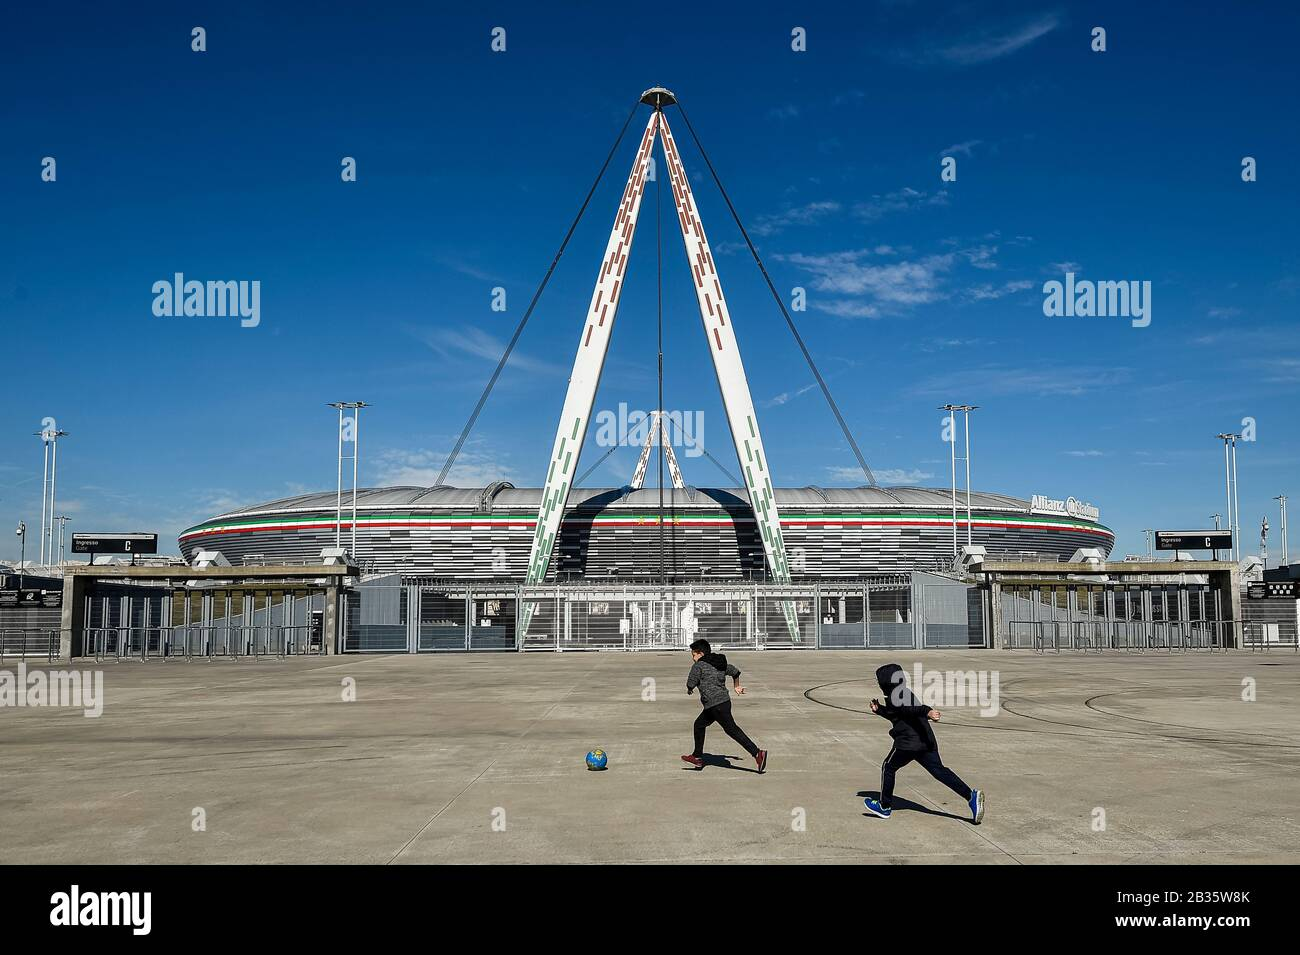 Turin Italy March 04 2020 Two Childs Play With A Ball Outside Desert Allianz Stadium Also